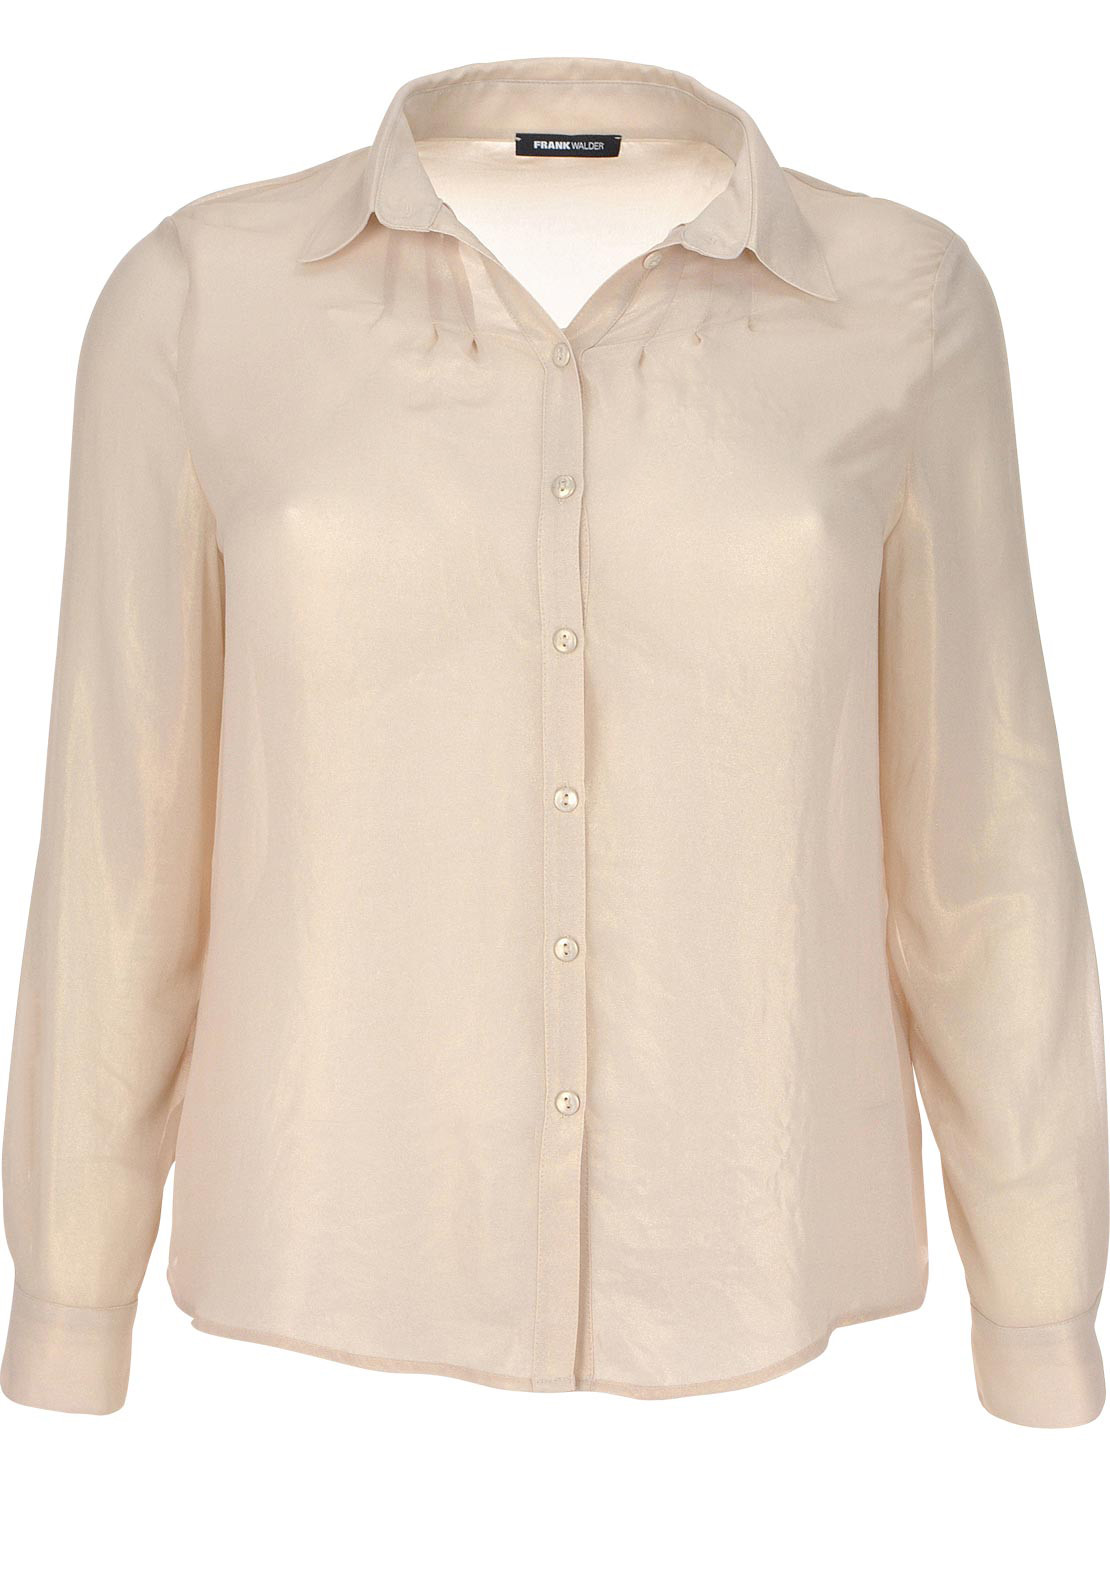 Frank Walder Sheer Chiffon Blouse, Gold